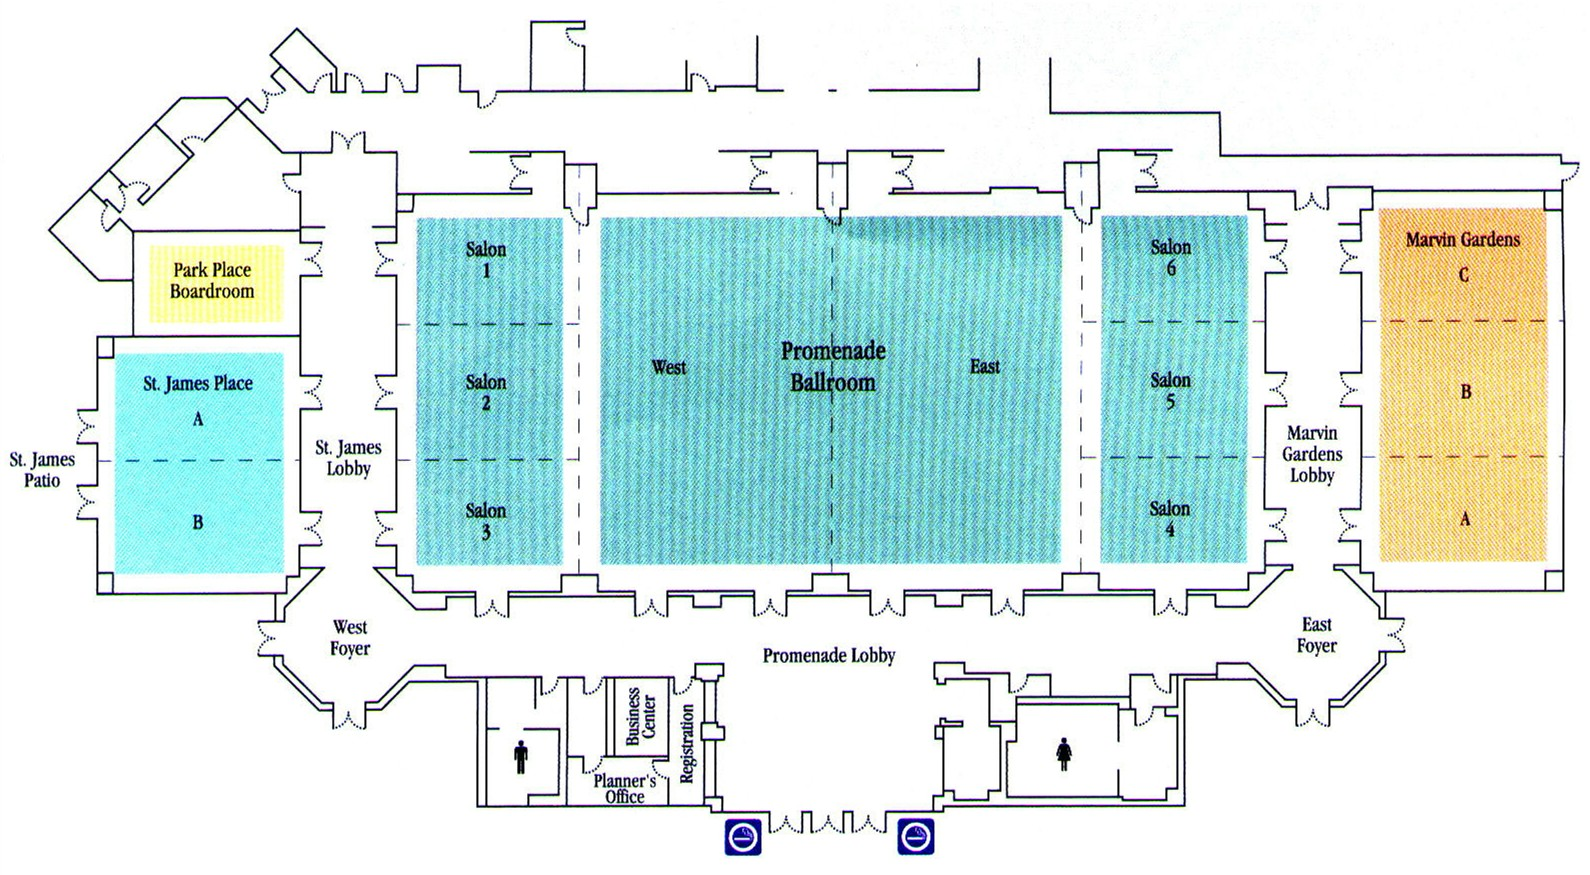 New Look  Resort Hotel Maps Photo  Of  Las Vegas Maps Top - Florida mall map